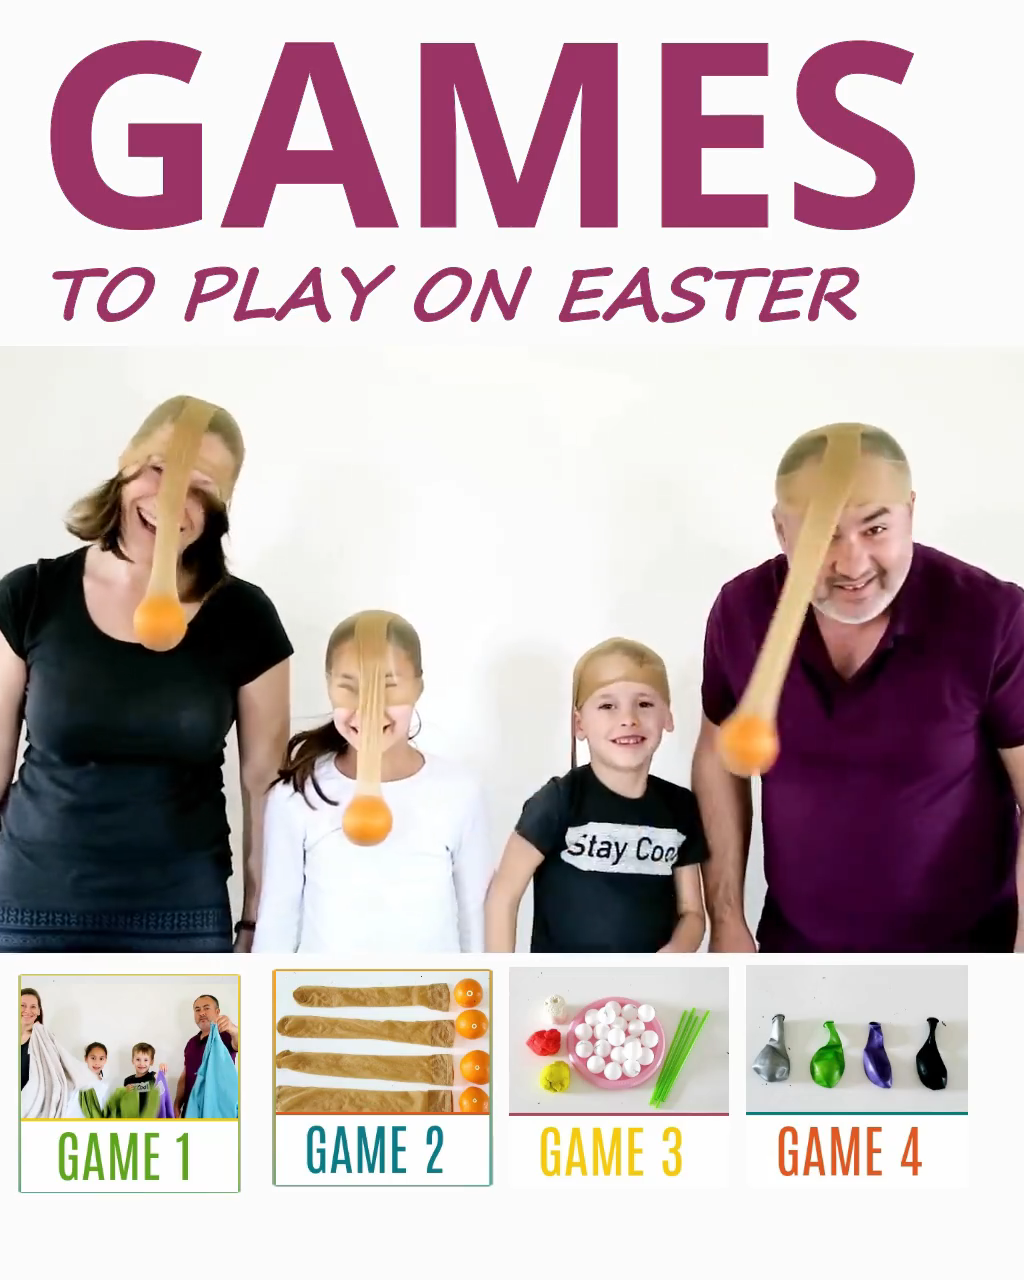 Are you looking for Easter Family Gathering Games, that'd require minimal set up? YAY, you've found it. Hilarious Easter family gathering games are FUN, QUICK and require NO or just LITTLE PREPARATION. #EasterGames #EasterFamilyGames #HilariousEasterGames #FamilyGames #EasterFamilyActivities #EasterGamesForKids #EasterActivitiesForKids #FunFamilyGames